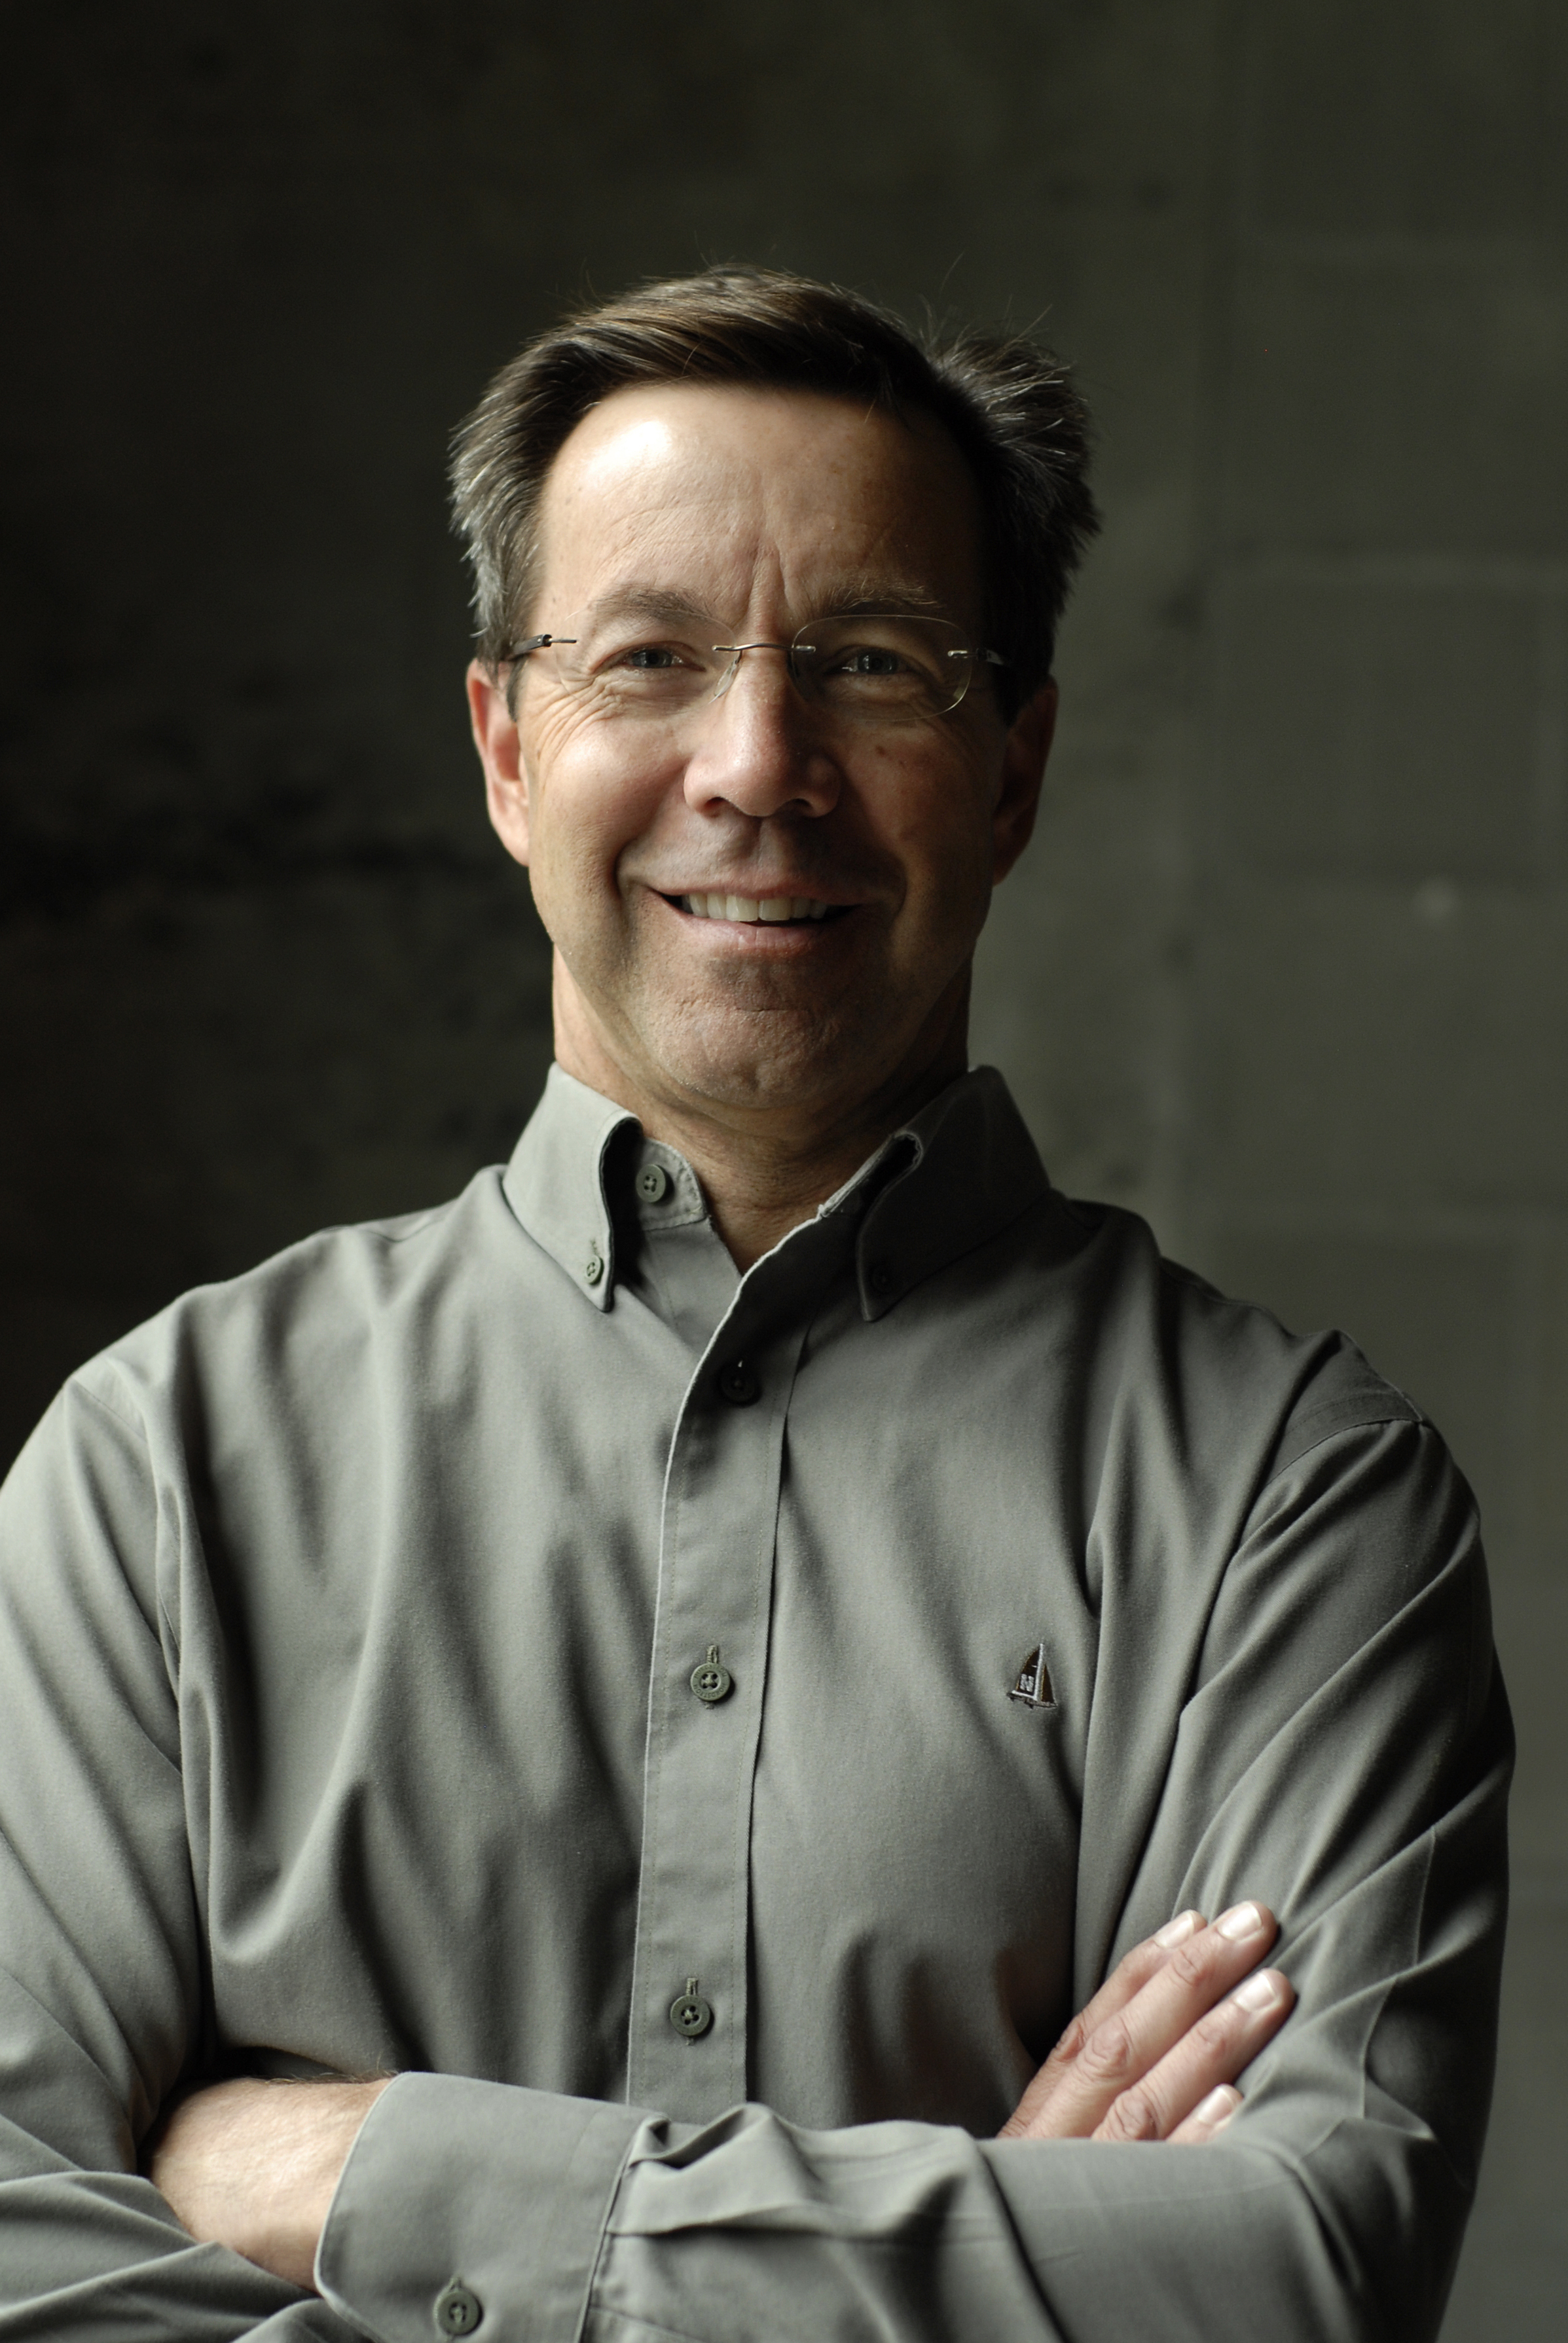 Todd Hess, Founder